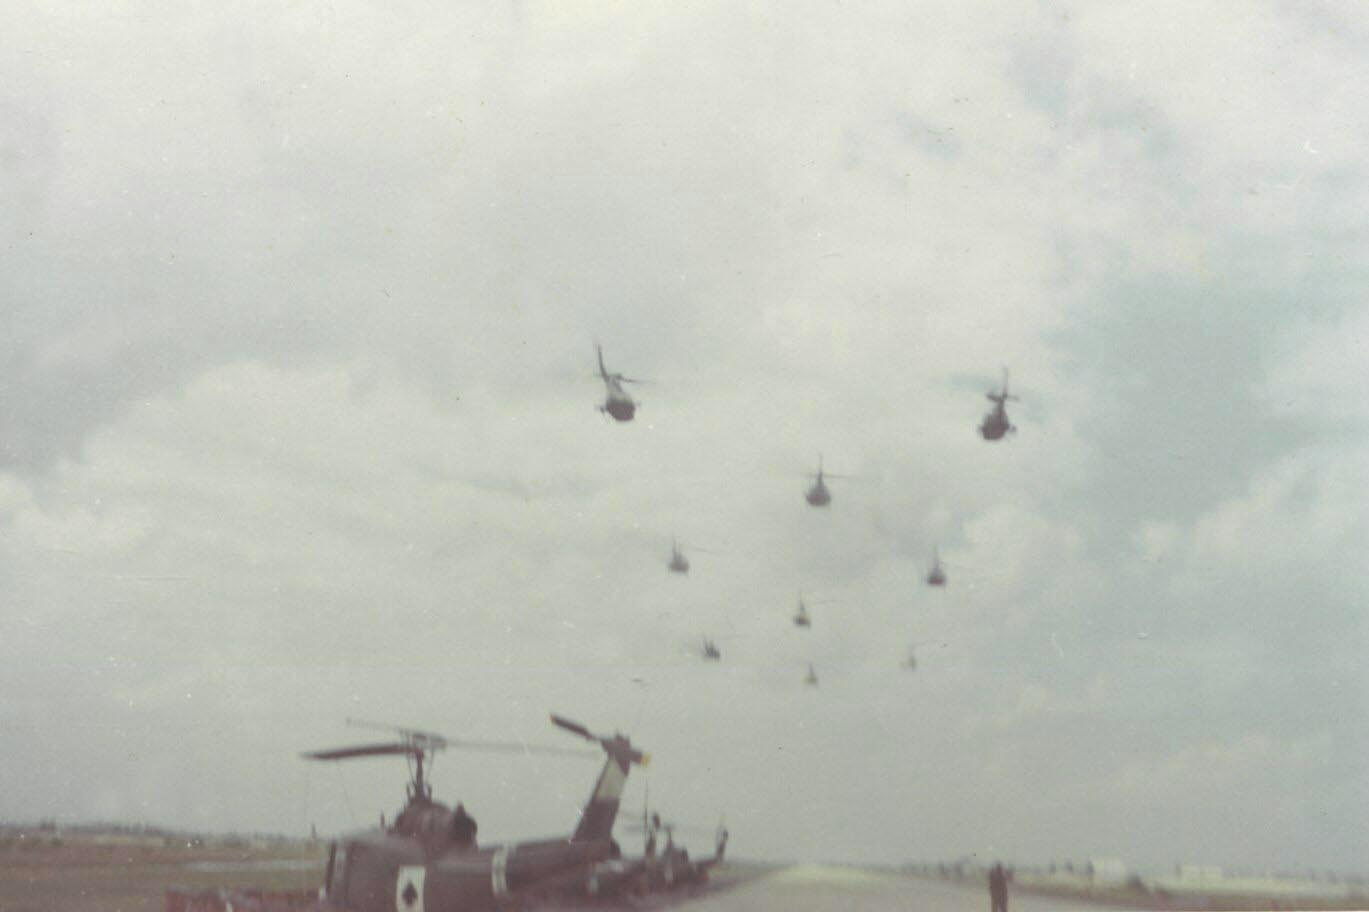 174th ahc vietnam - The First Two Photos Below Where Taken On 15 October 1971 And Is Of The Last Operational Mission Flown By The 174th Assault Helicopter Company